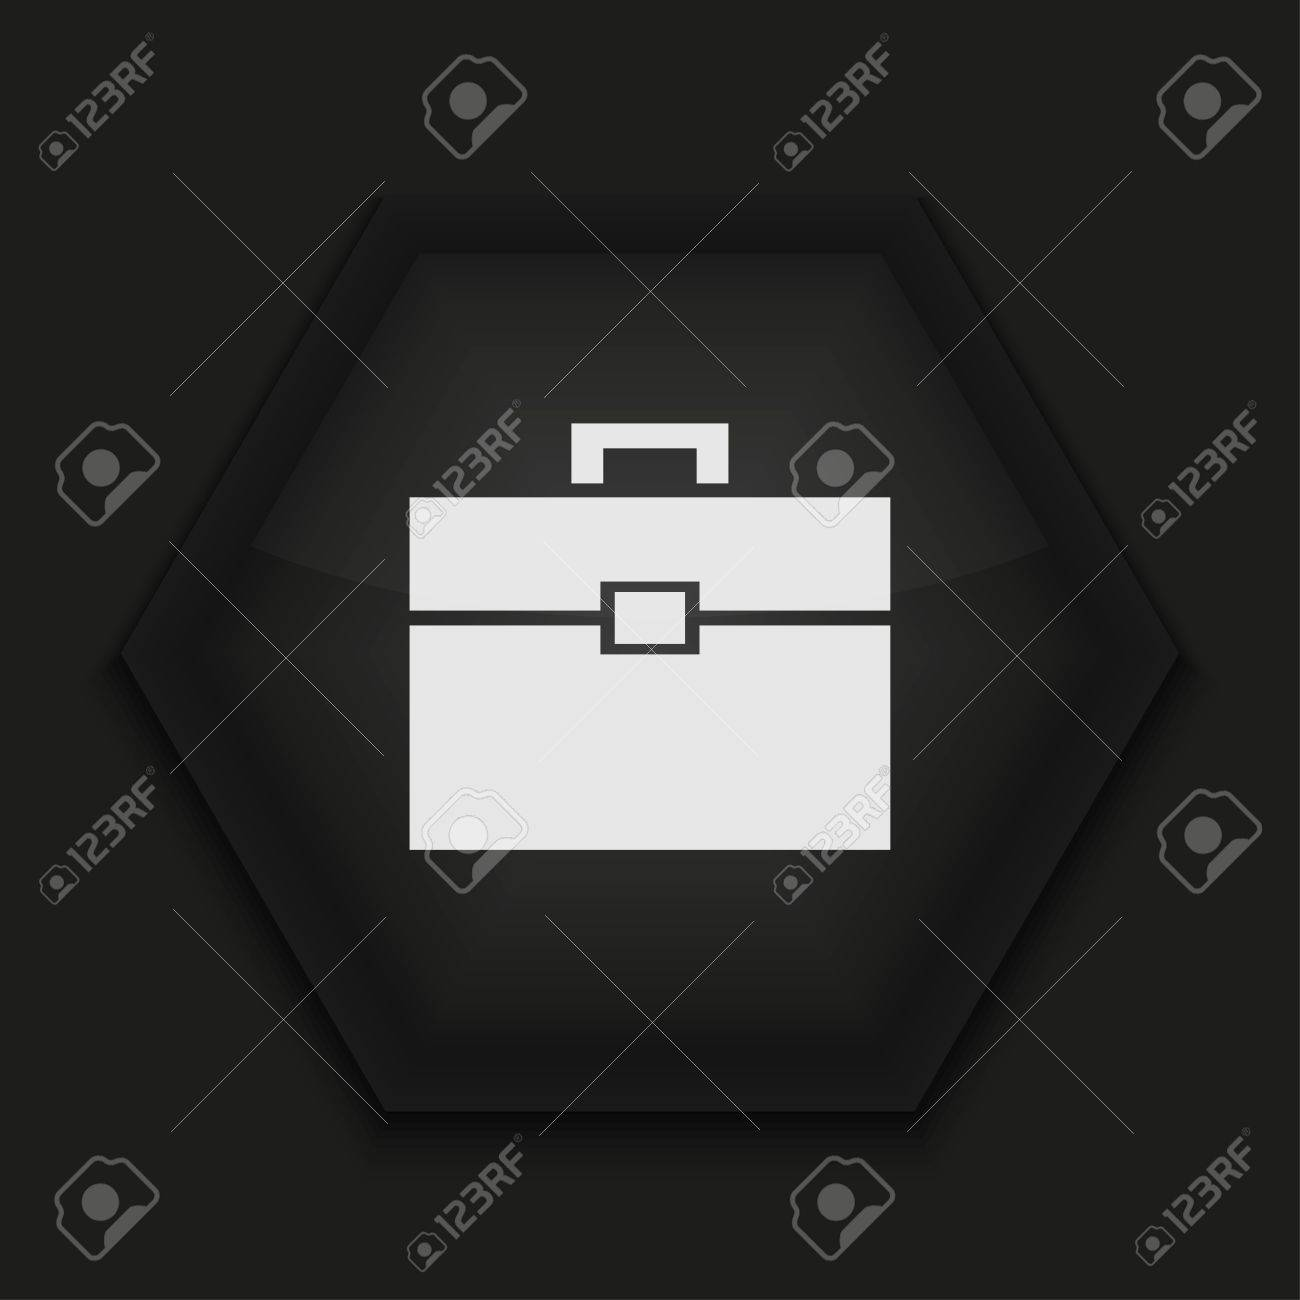 Vector creative icon on black background. Eps10 Stock Vector - 17273400